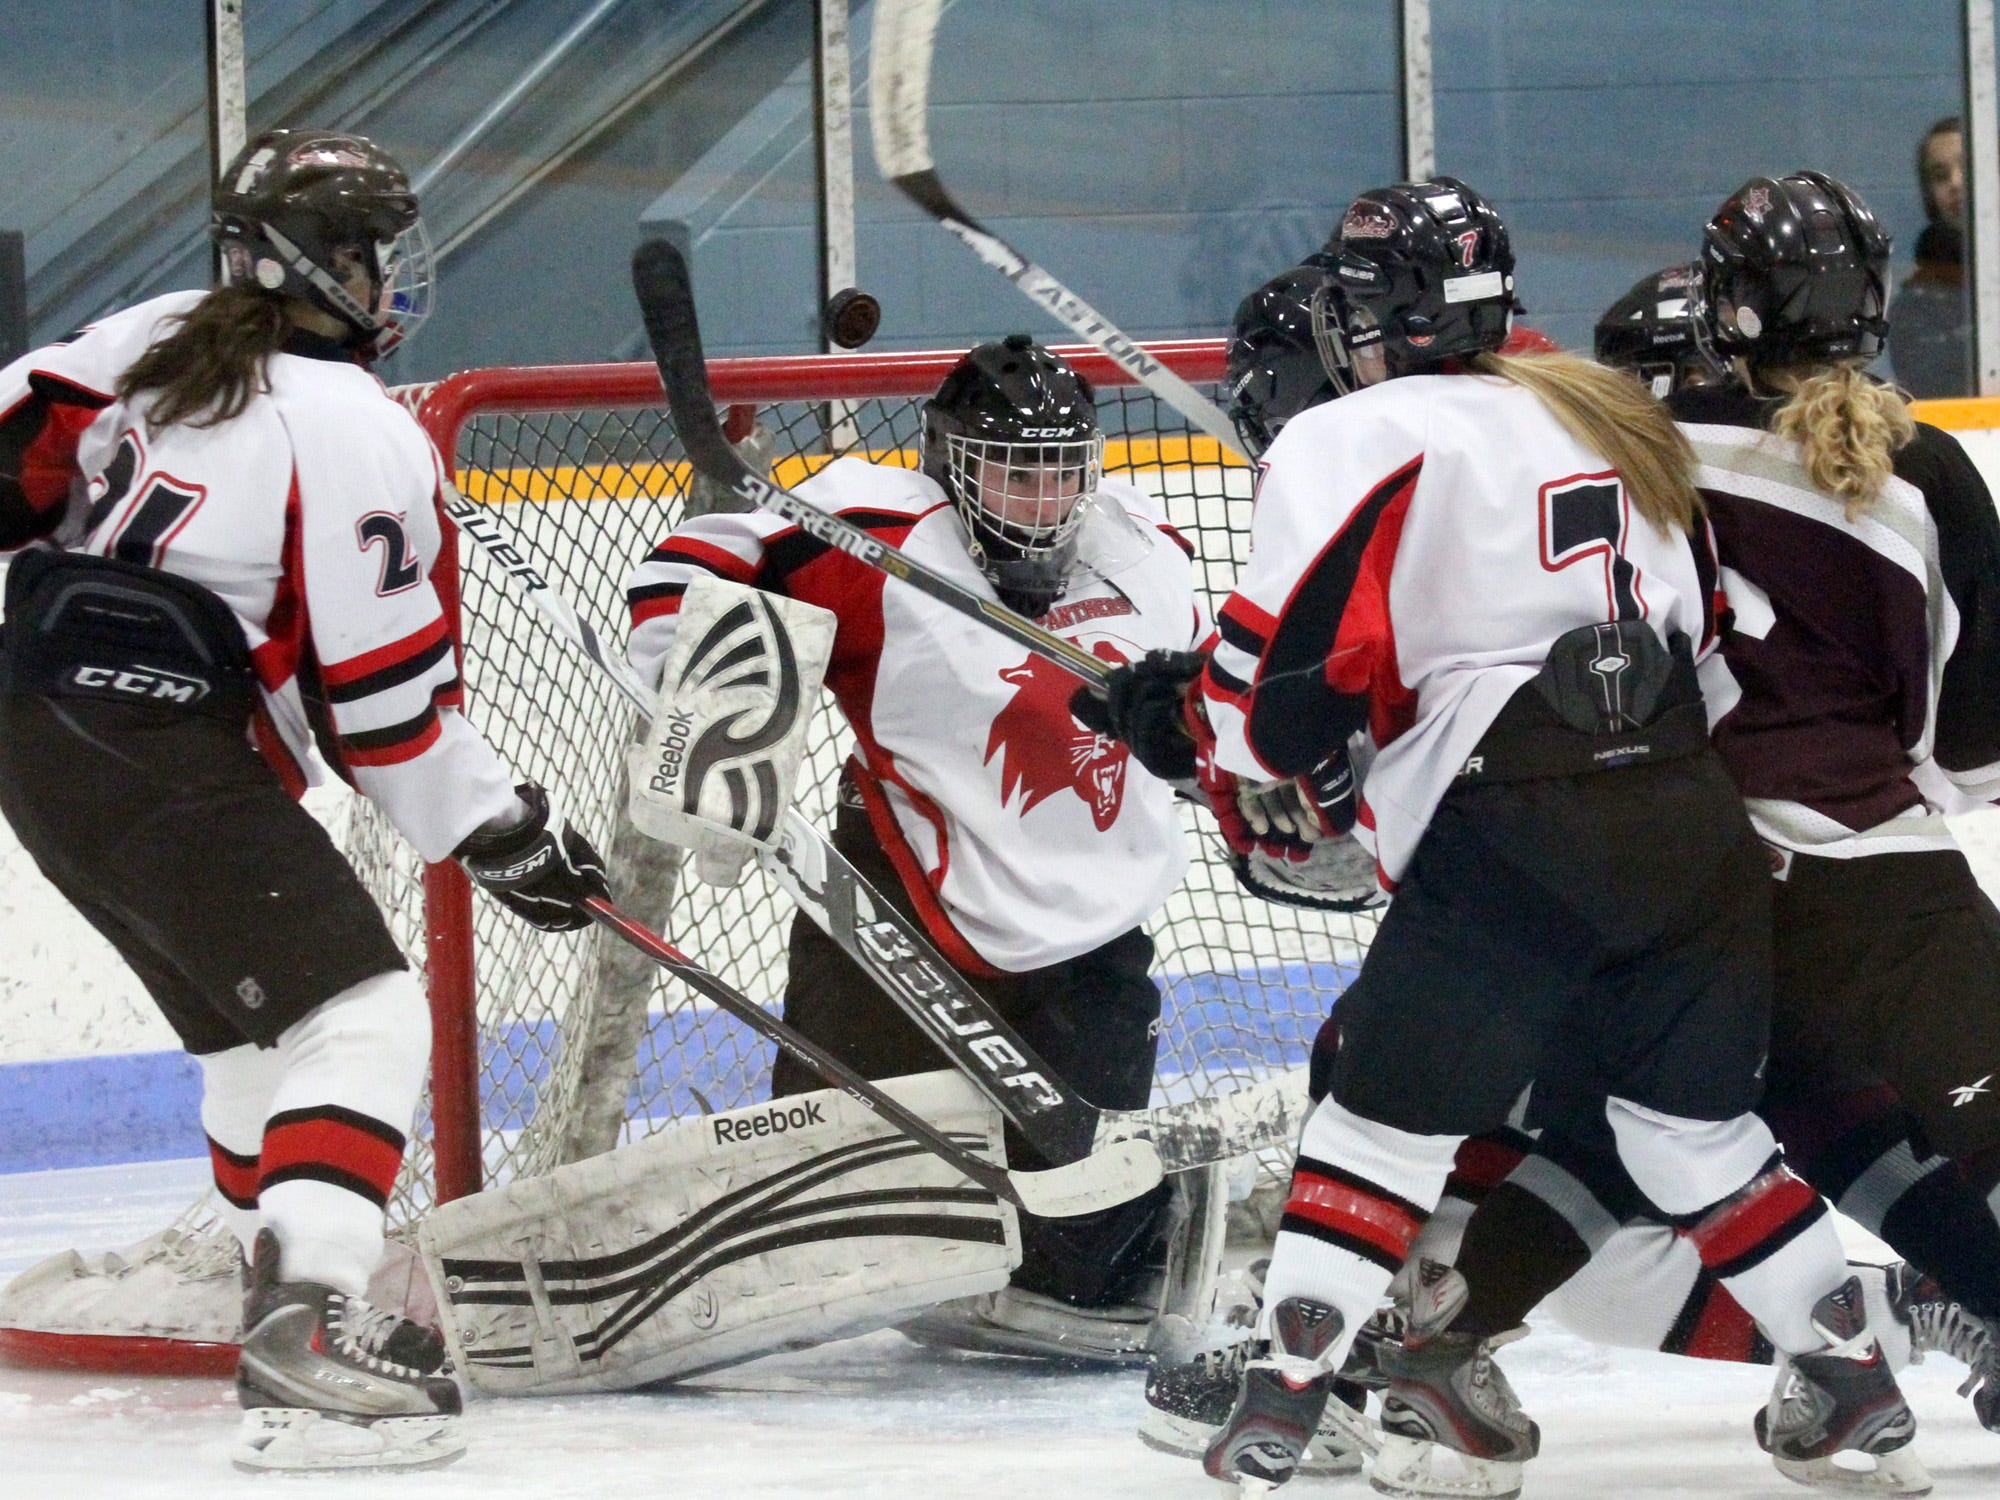 The puck pops up as Point/Rapids goalie Merina Chappel makes the initial save against the Central Wisconsin Storm during Friday's game at K.B. Willett Arena in Stevens Point.